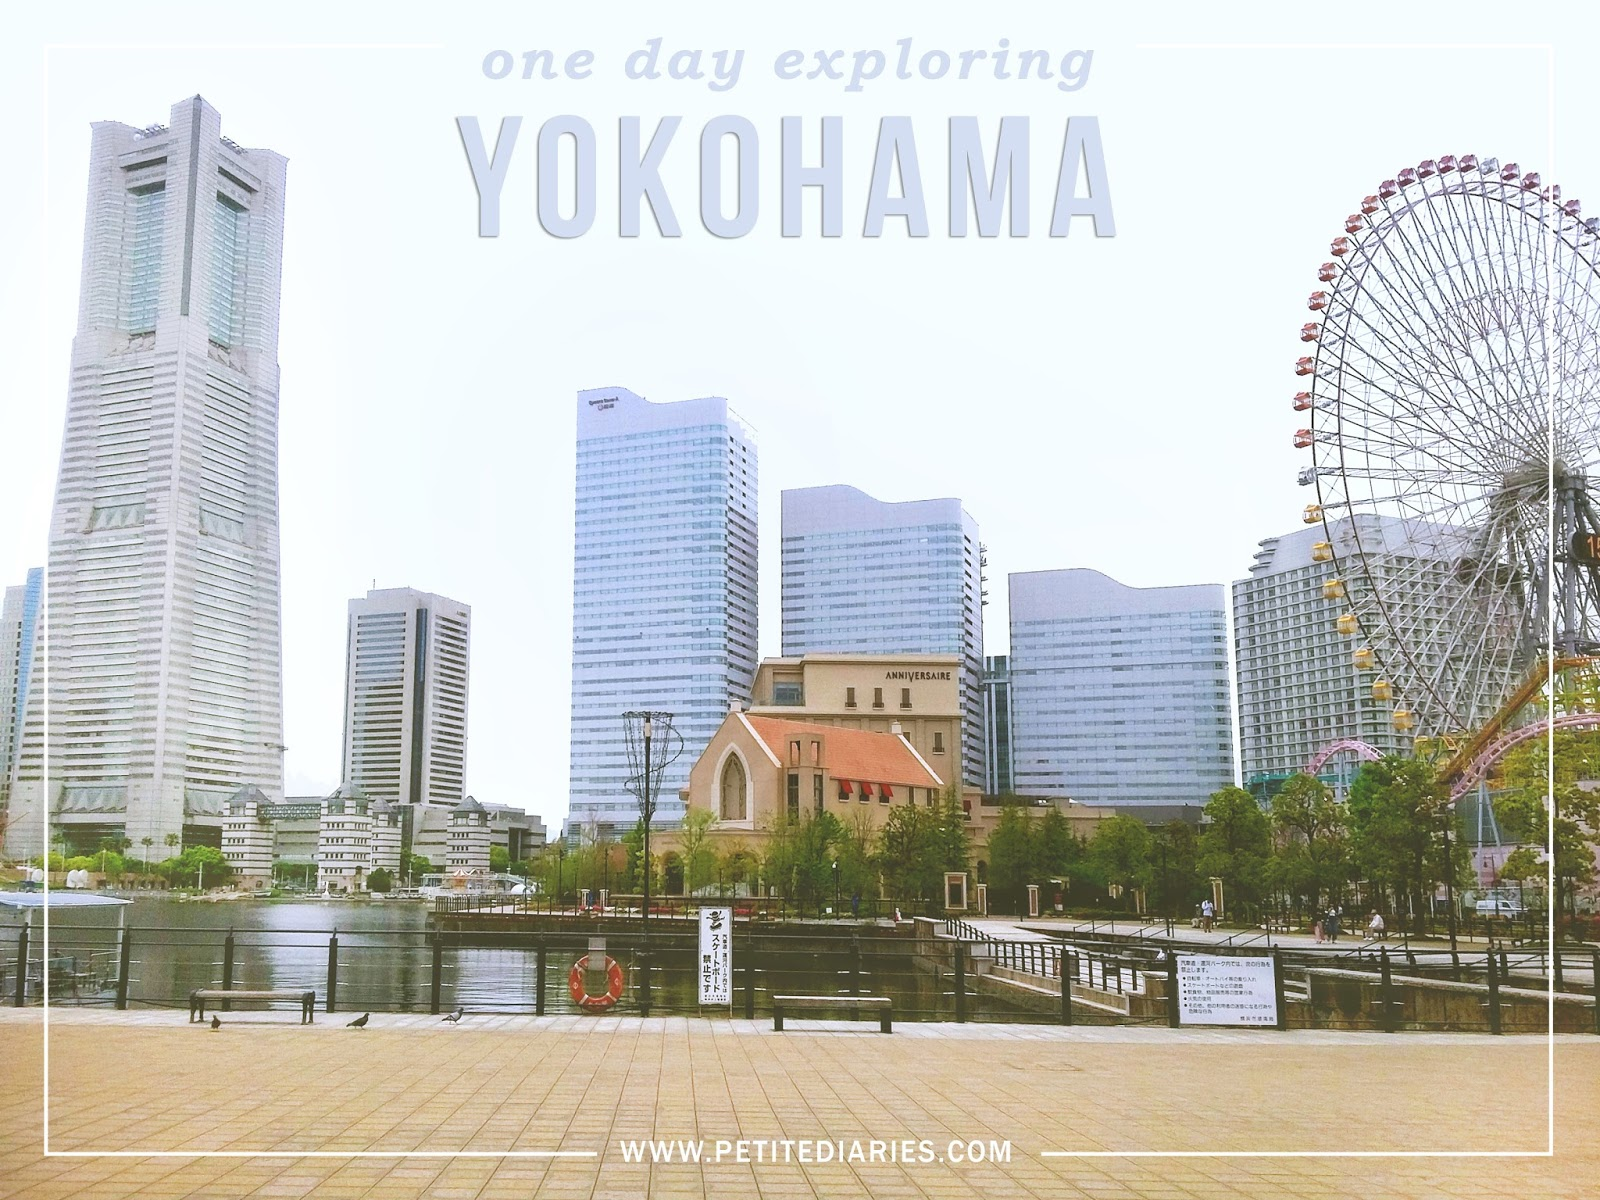 travel to YOKOHAMA in a day